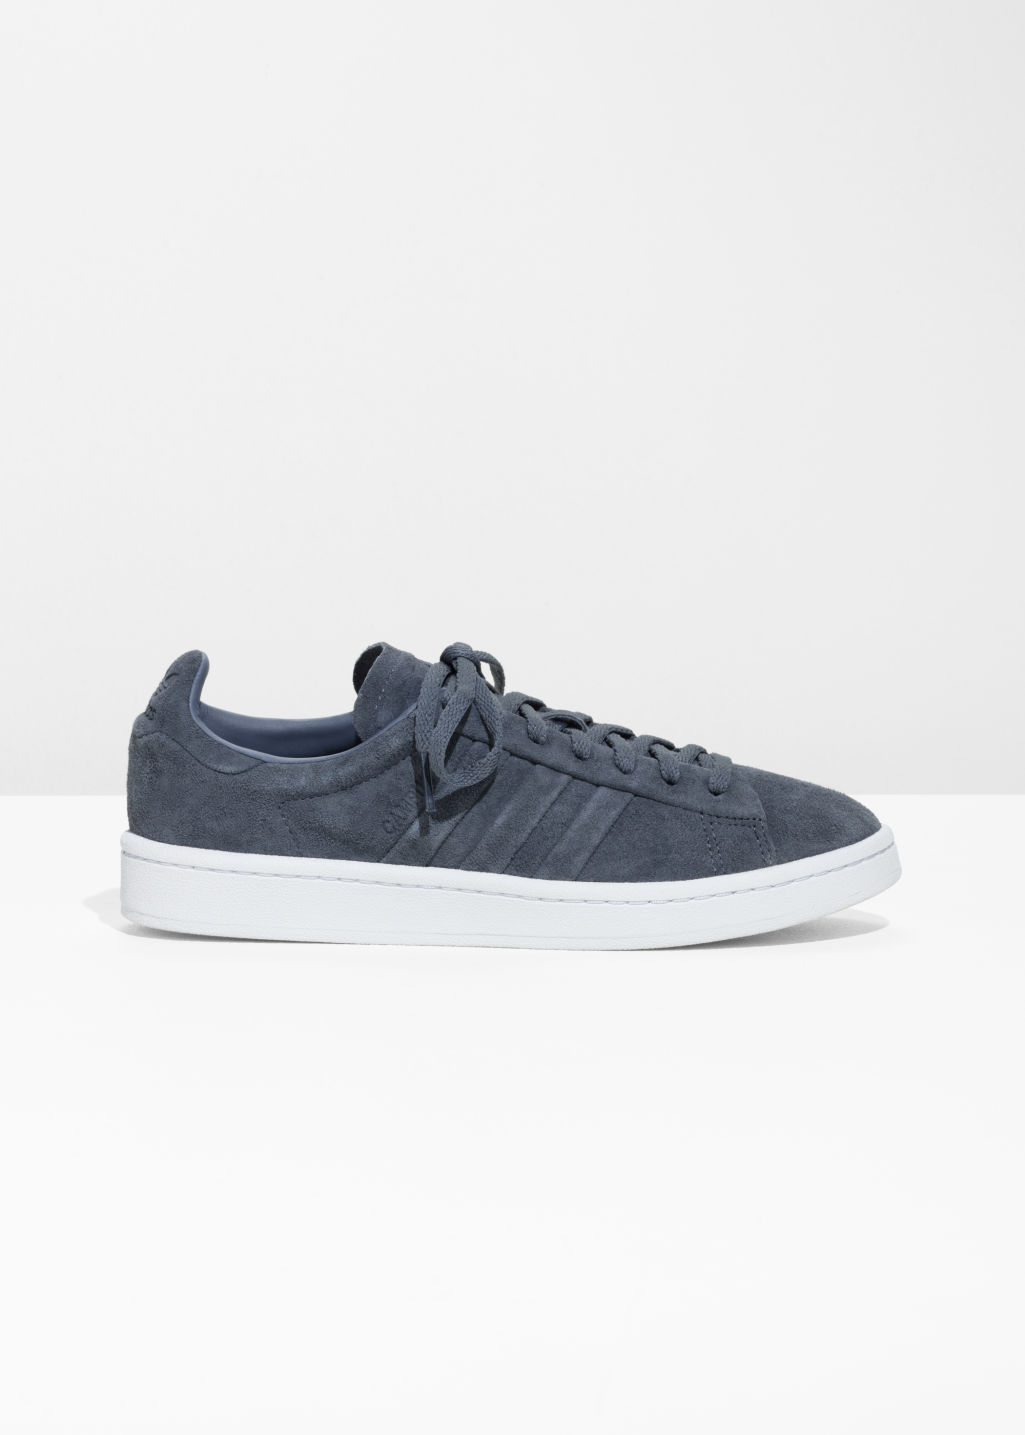 & OTHER STORIES Adidas Campus Stitch - Grey 9huXLR